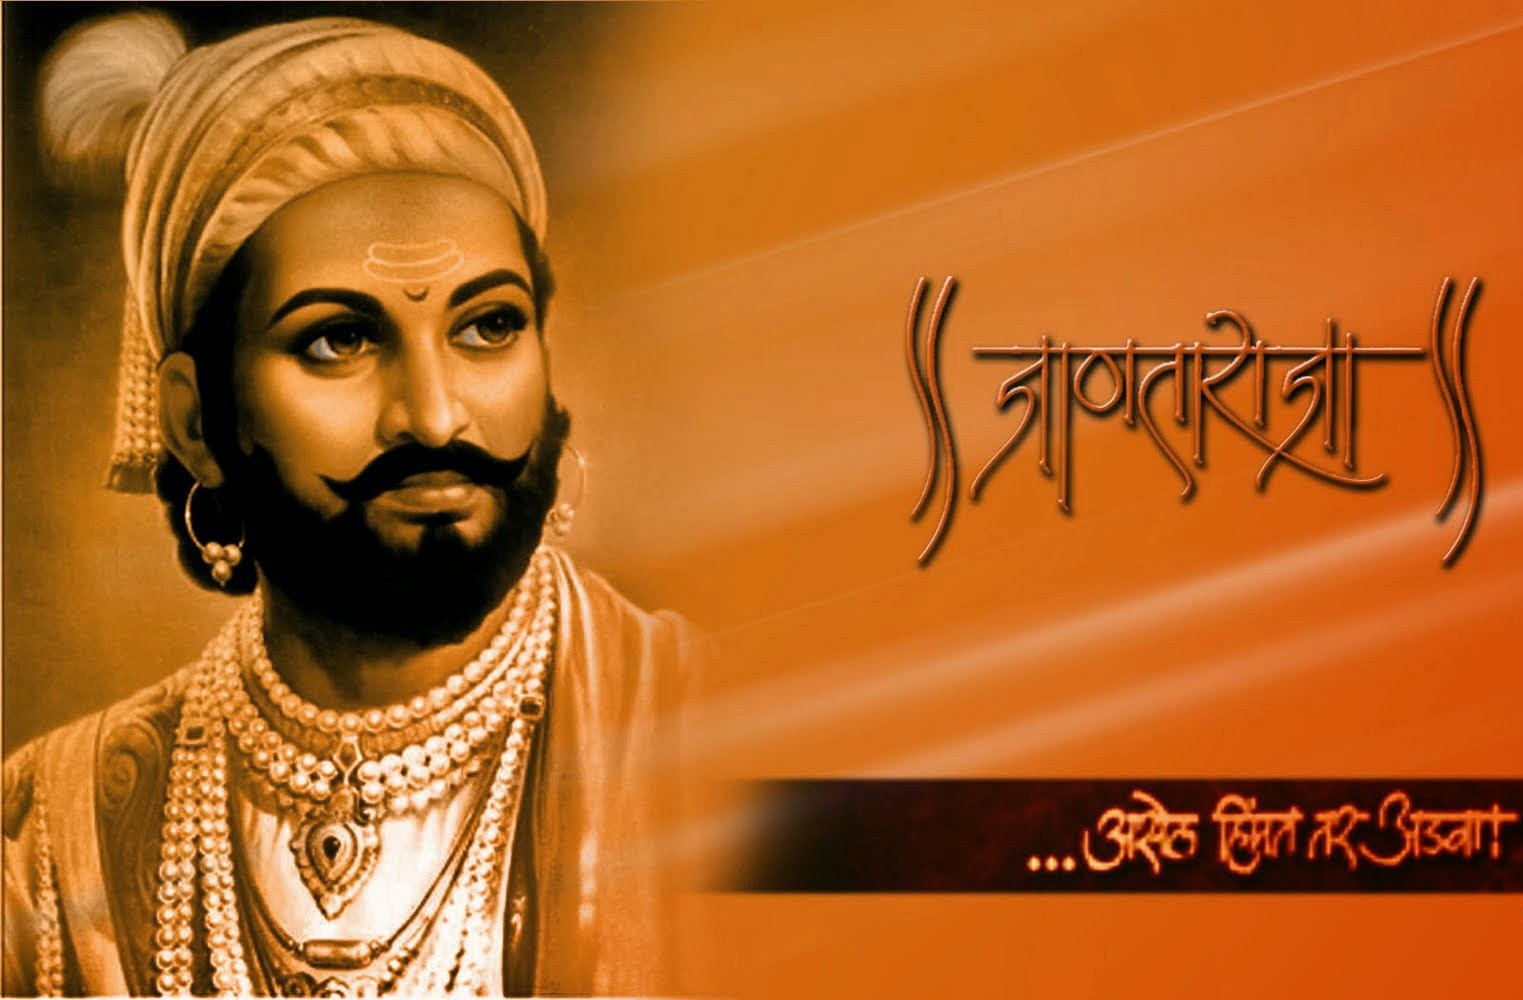 Hd wallpaper shivaji maharaj - King Shiva Ji Images Wishes